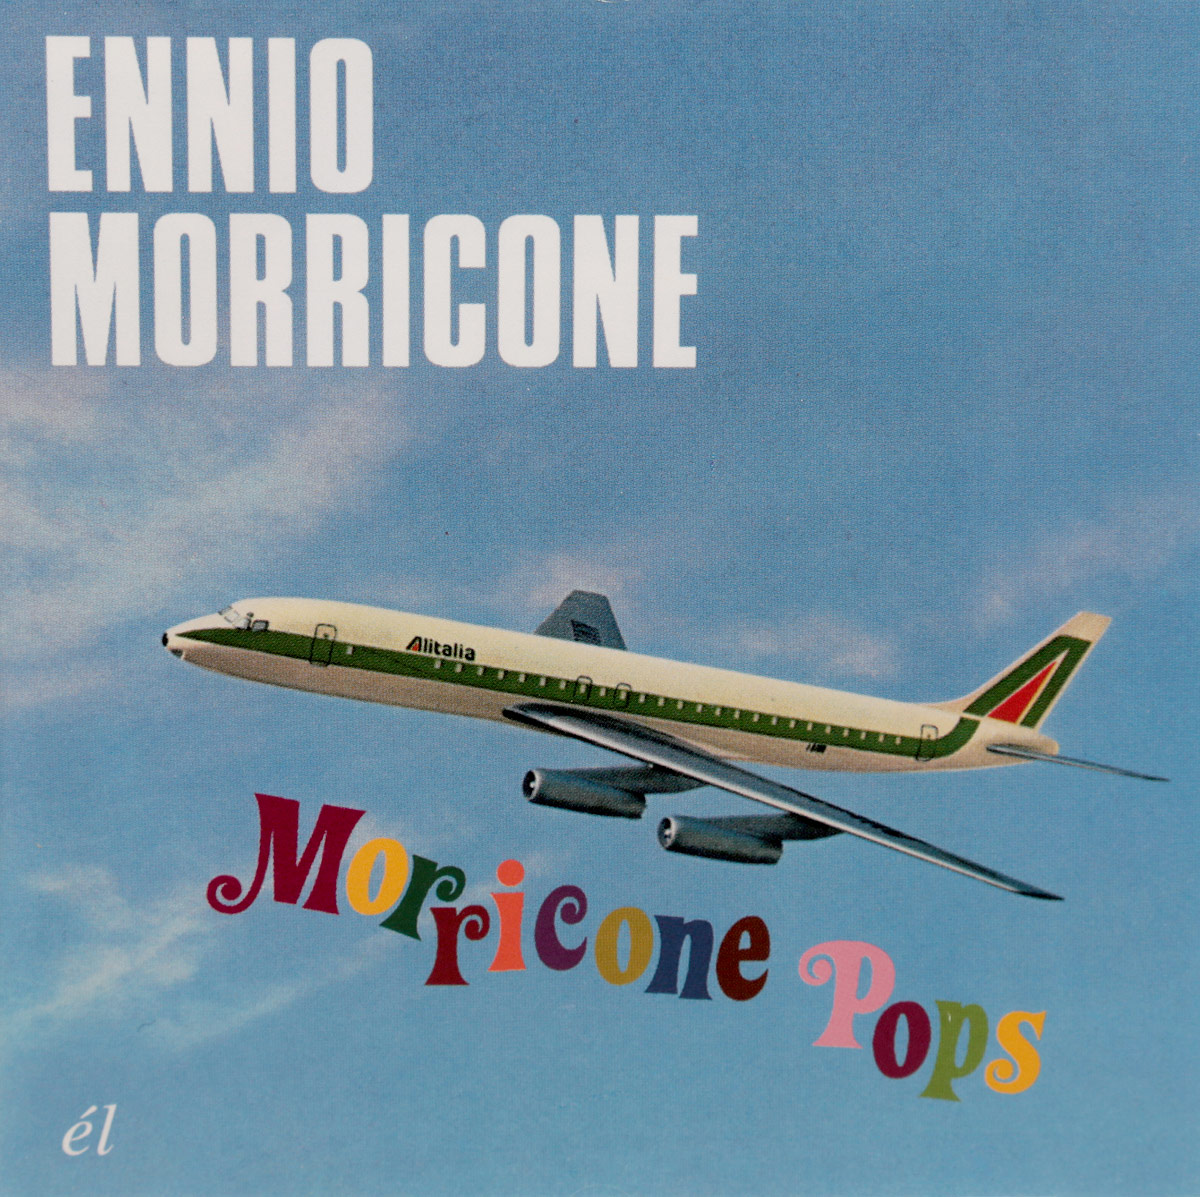 Эннио Морриконе Ennio Morricone. Morricone Pops эннио морриконе ennio morricone the mission original soundtrack lp